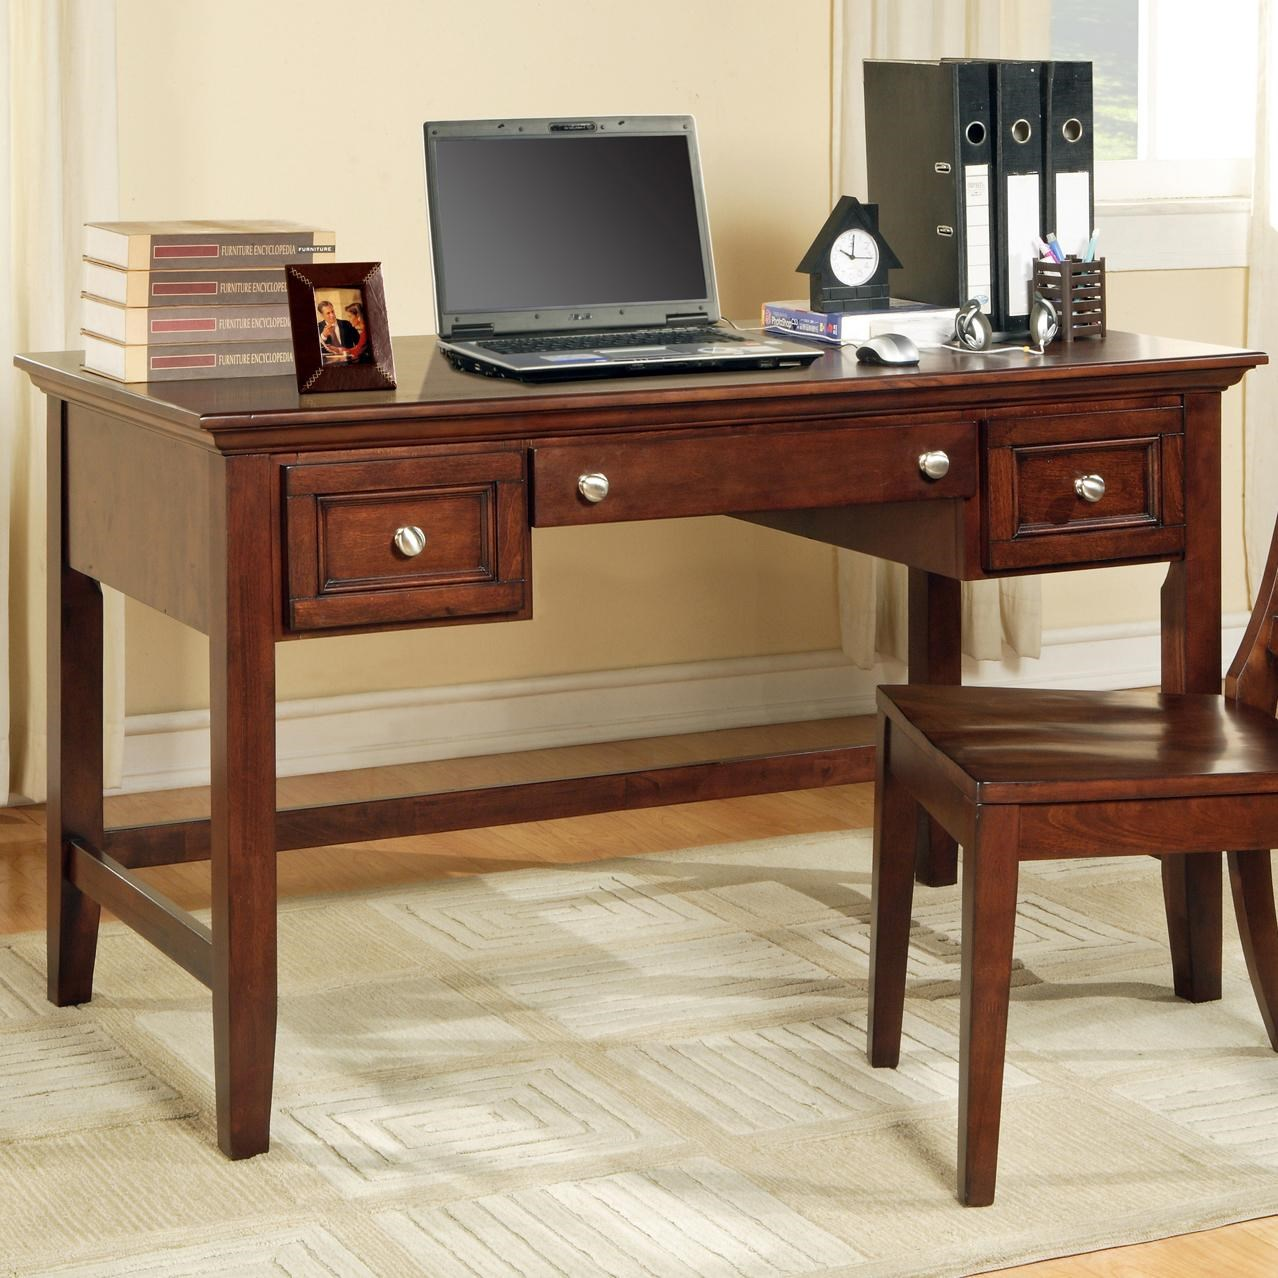 Superbe Steve Silver Oslo Transitional 2 Drawer Writing Desk With Keyboard Tray